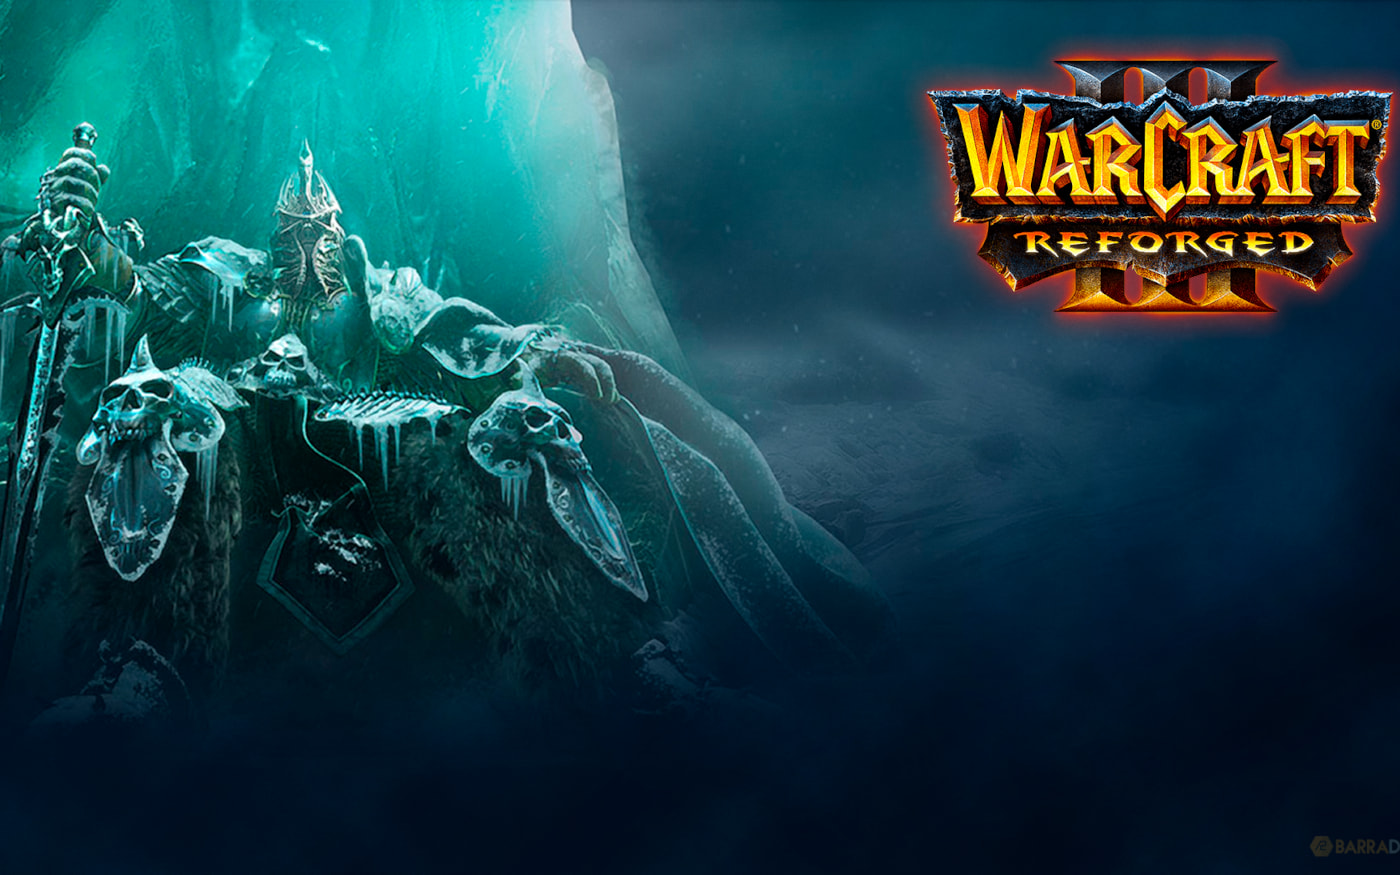 Review: Warcraft 3 Reforged, a Blizzard realmente pisou na bola